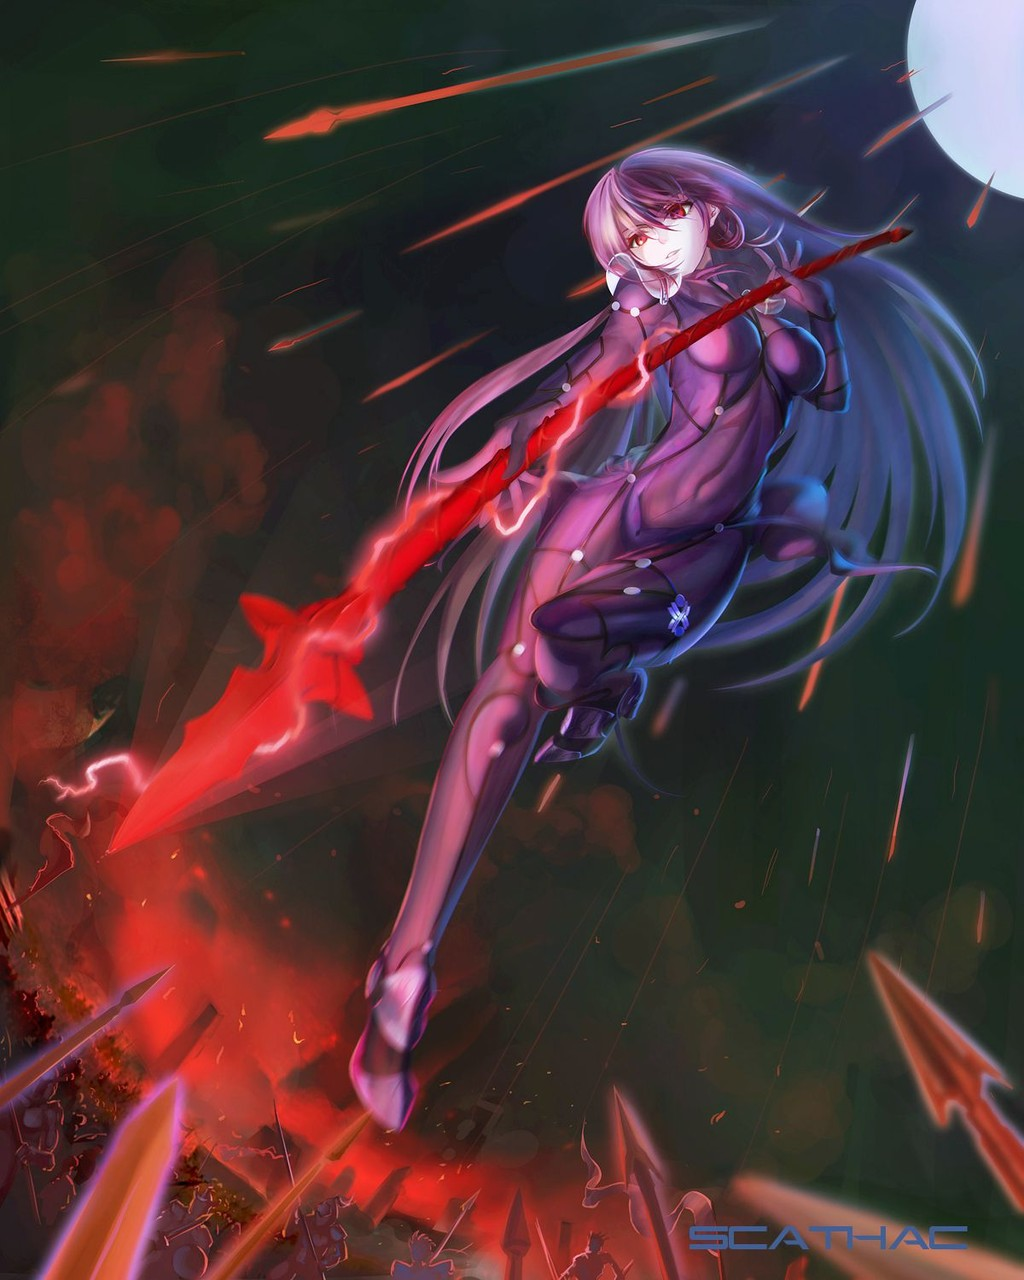 scathach_(fategrand_order)021